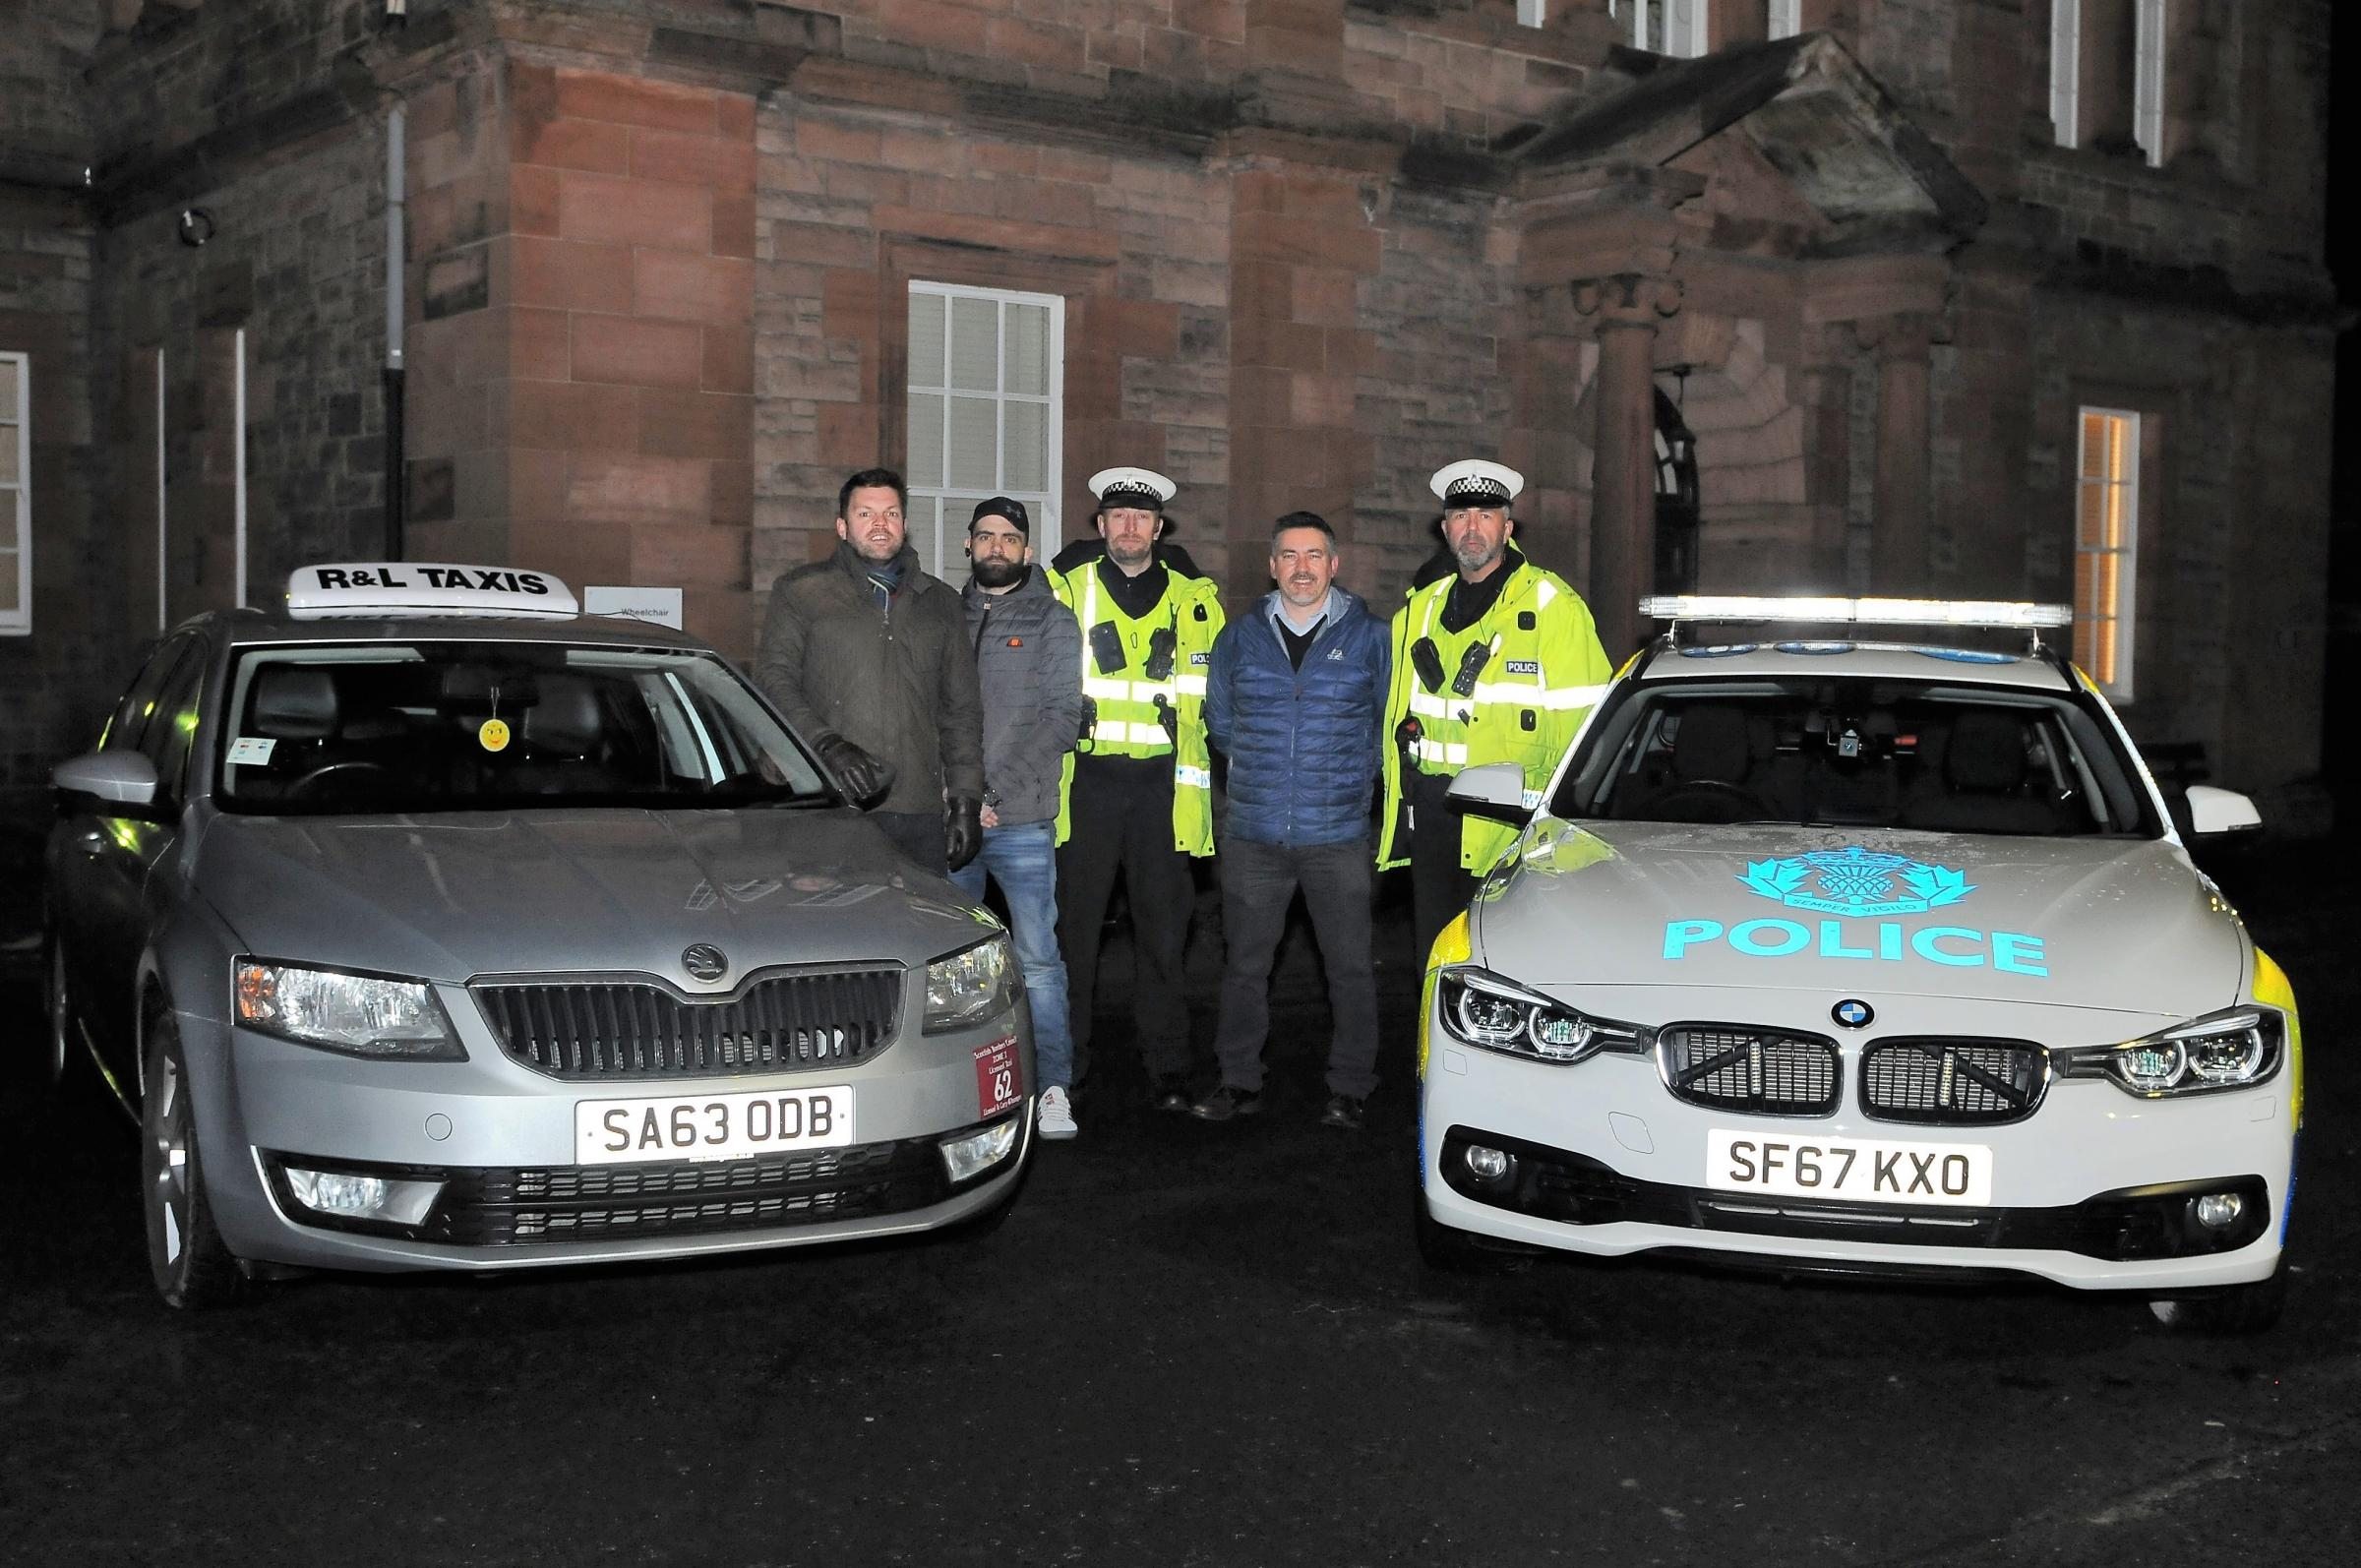 Bruce Mercer, Bryan Hoggan and PC Conal McEwan are joined by traffic officers. Photo: Grant Kinghorn